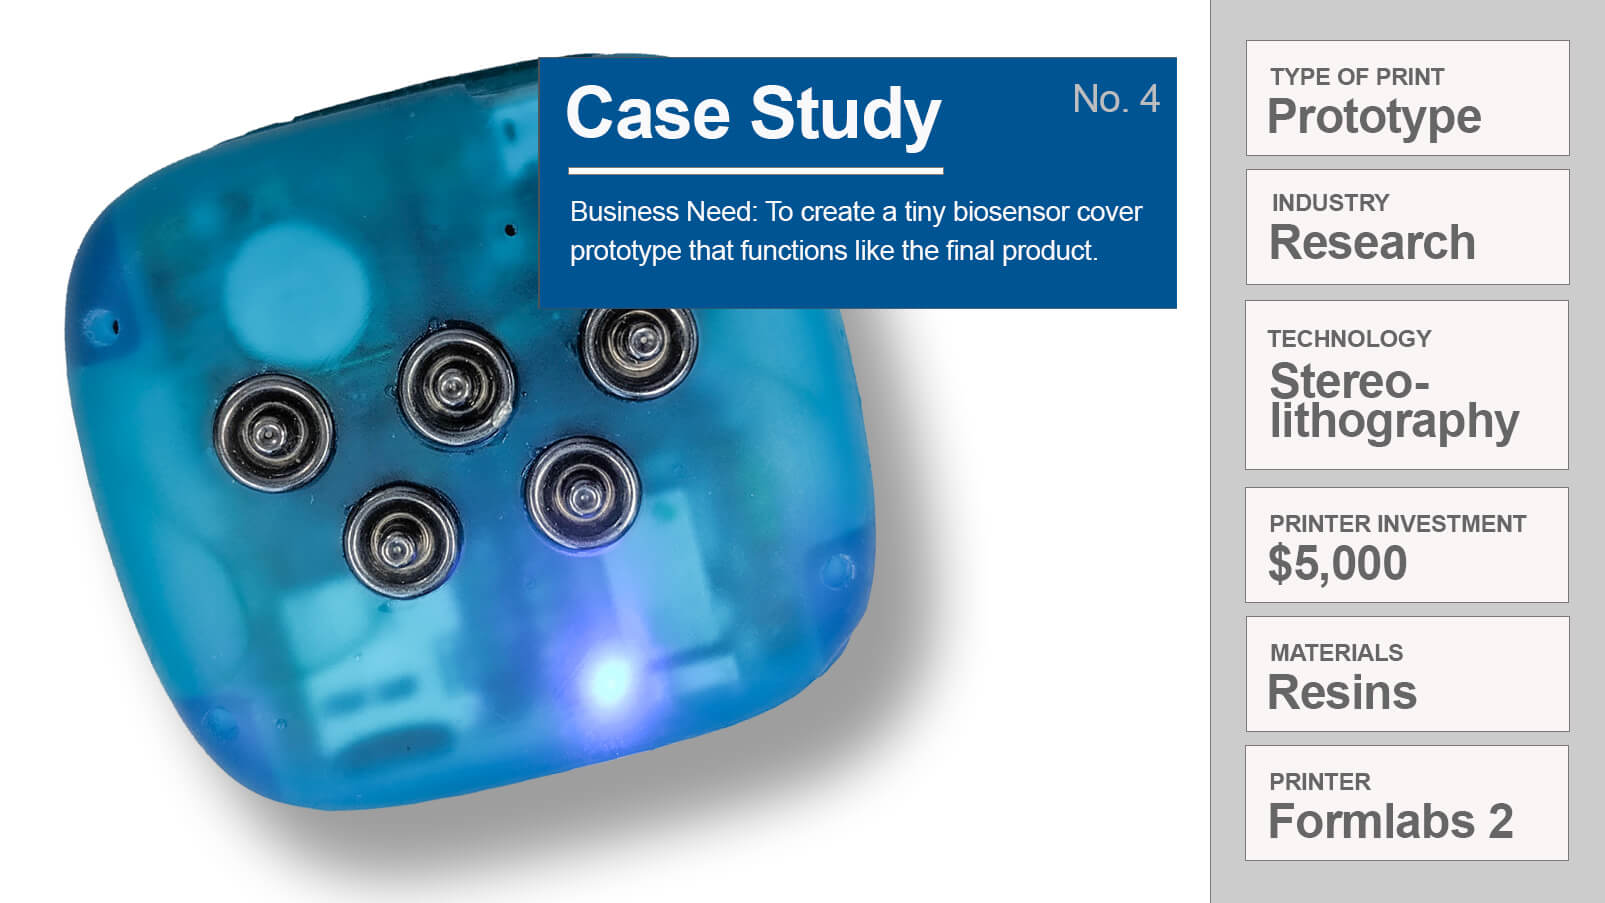 Case Study: Better Research Prototypes with 3D Printing | All3DP Pro